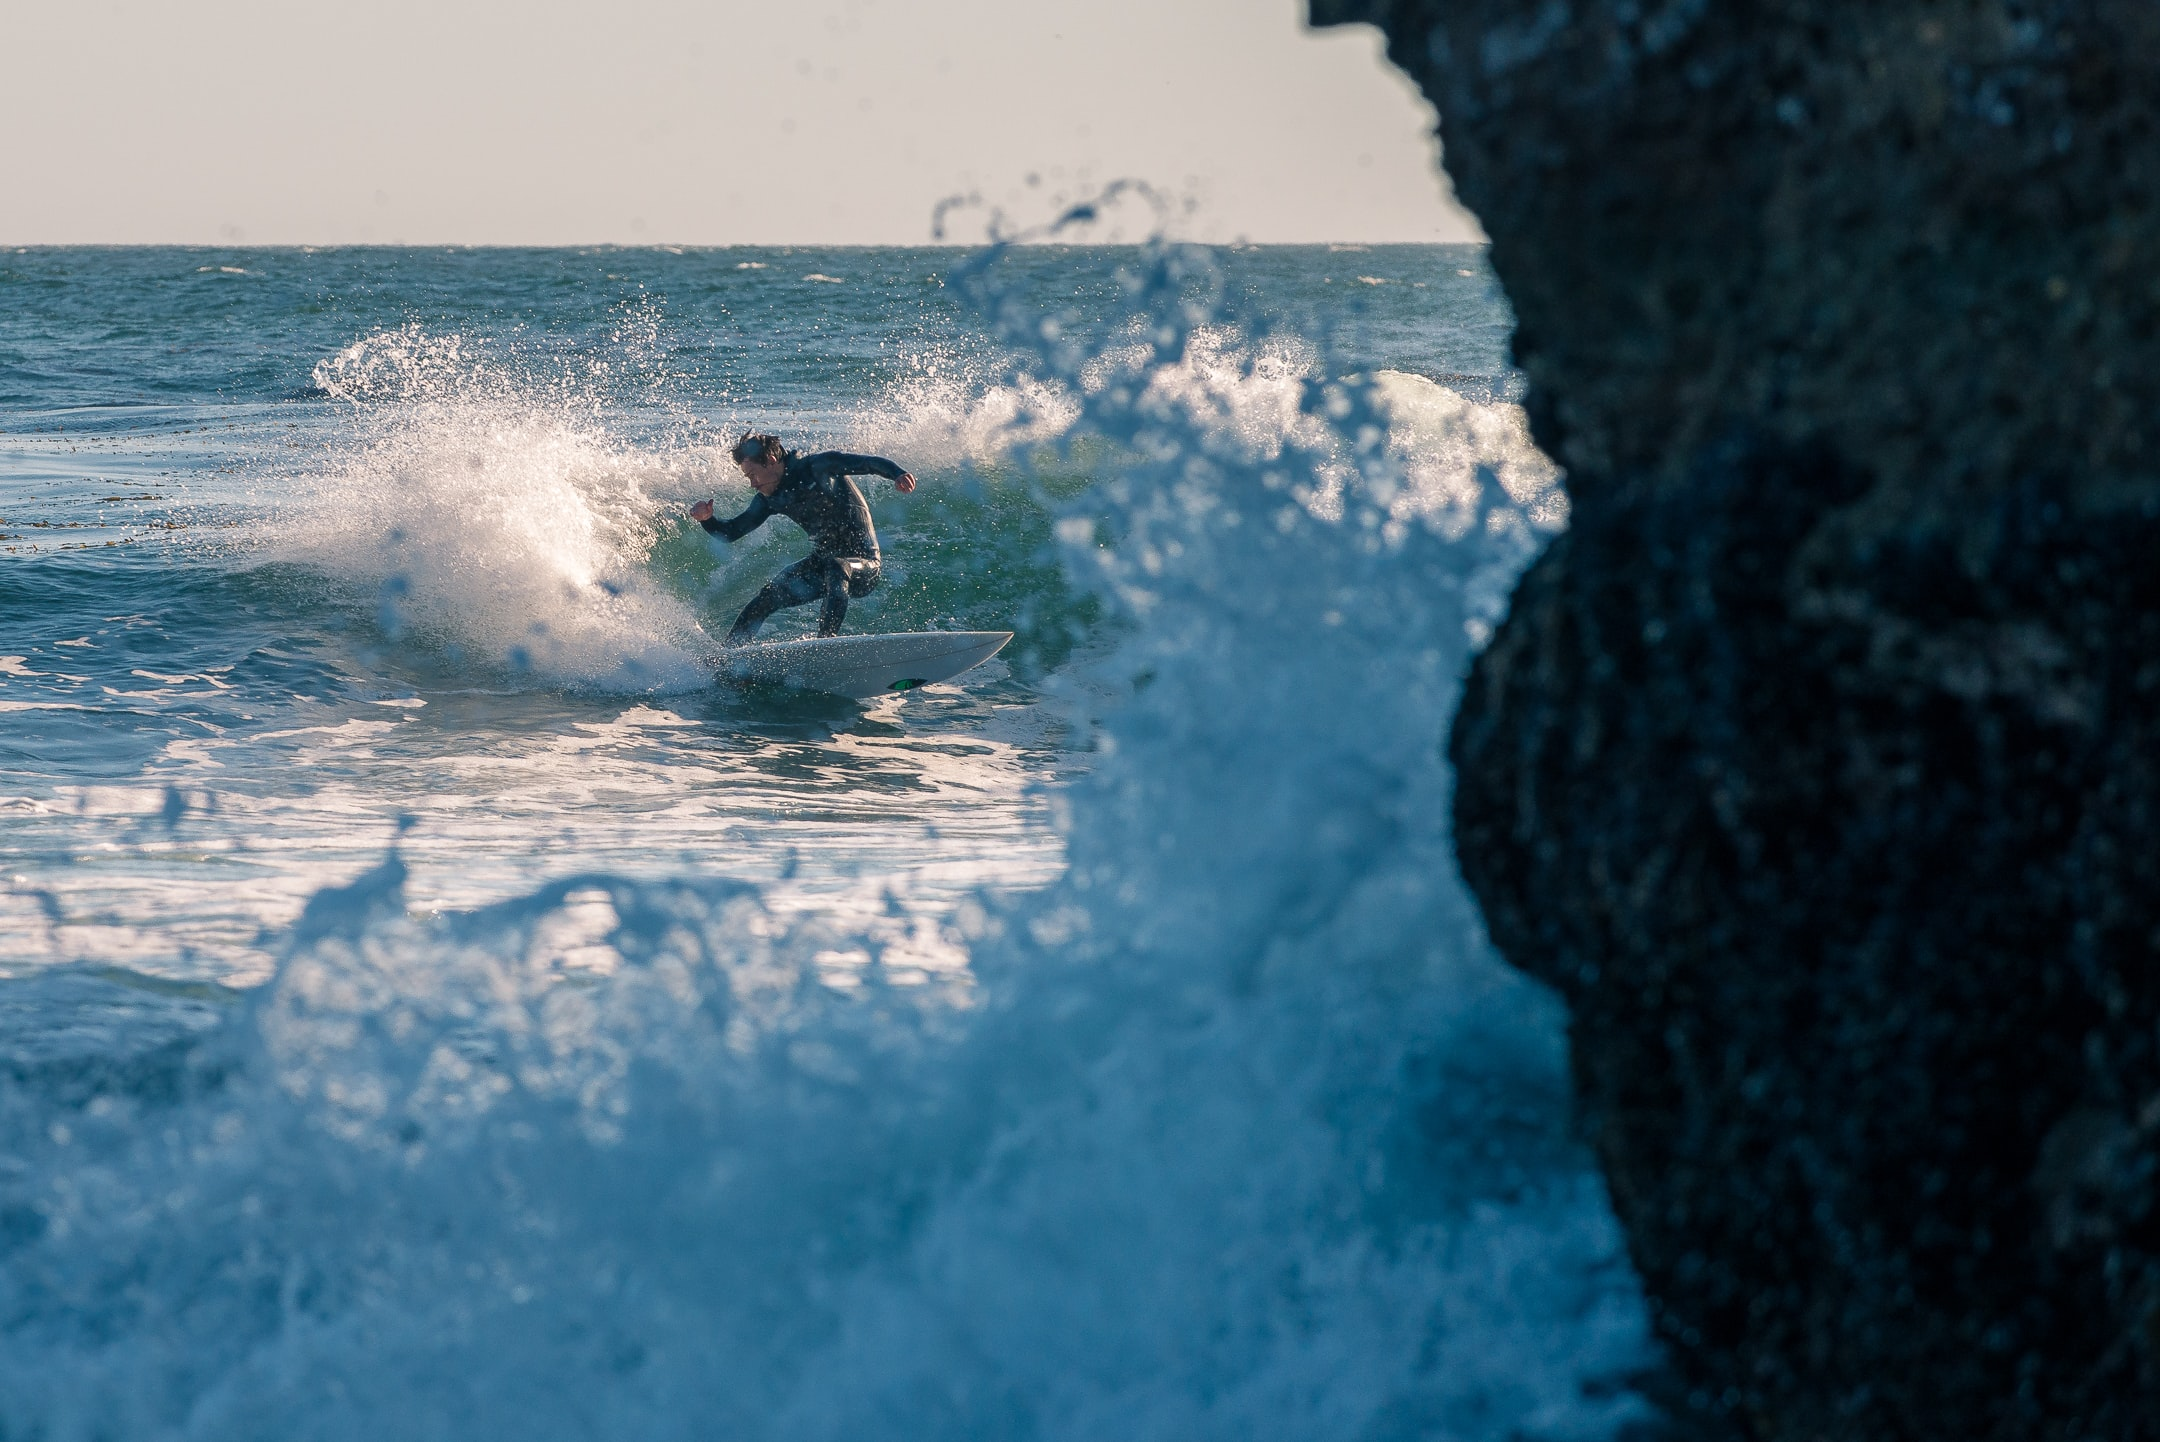 photography of surfboarding man